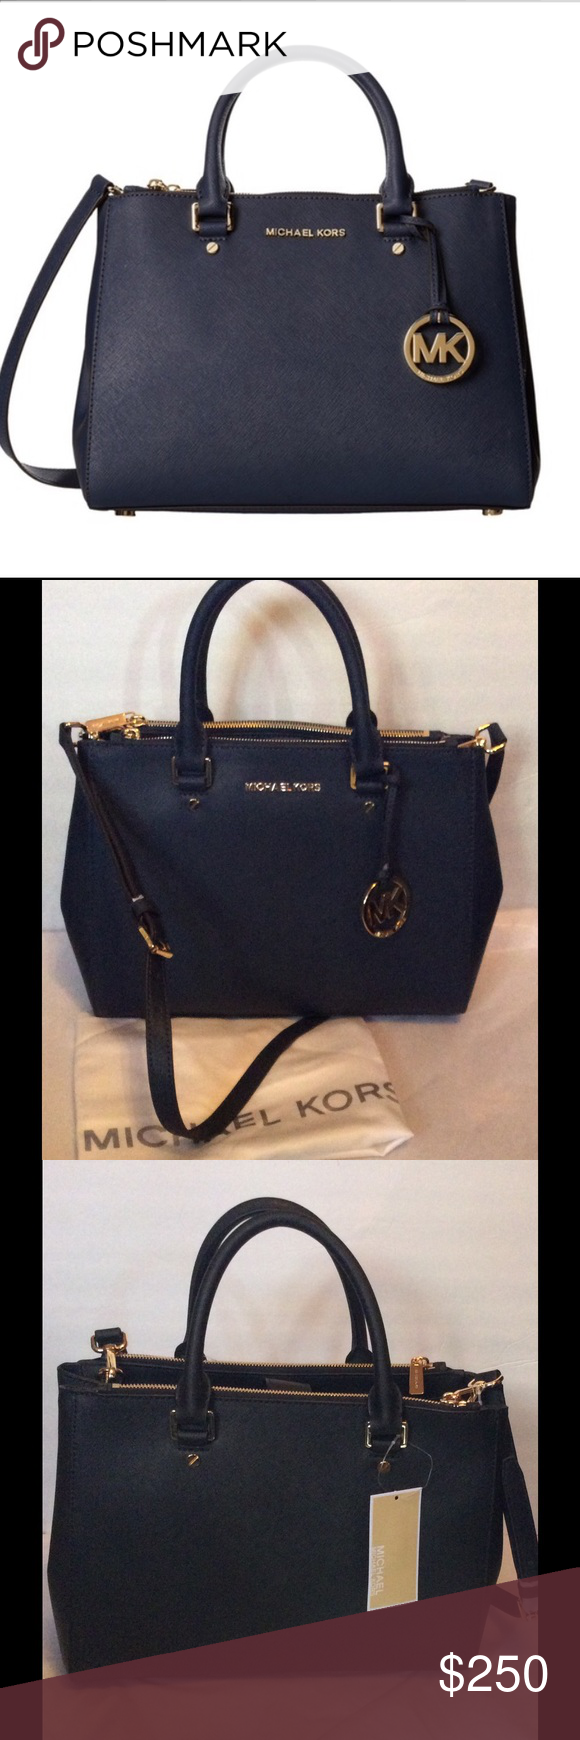 """Authentic Michael Kors Leather Satchel Navy NWT This classic Michael Kors satchel showcases a timeless black leather construction with goldtone hardware. With a magnetic top closure, double handles, and ample interior pockets for organization, this handbag will become your go-to accessory.   Construction: Leather Entry: Magnetic top closure Interior pockets: Two (2) side zip compartments, one (1) open compartment with zip pocket, four (4) slip pockets, one (1) key fob Bag dimensions: 9"""" x…"""